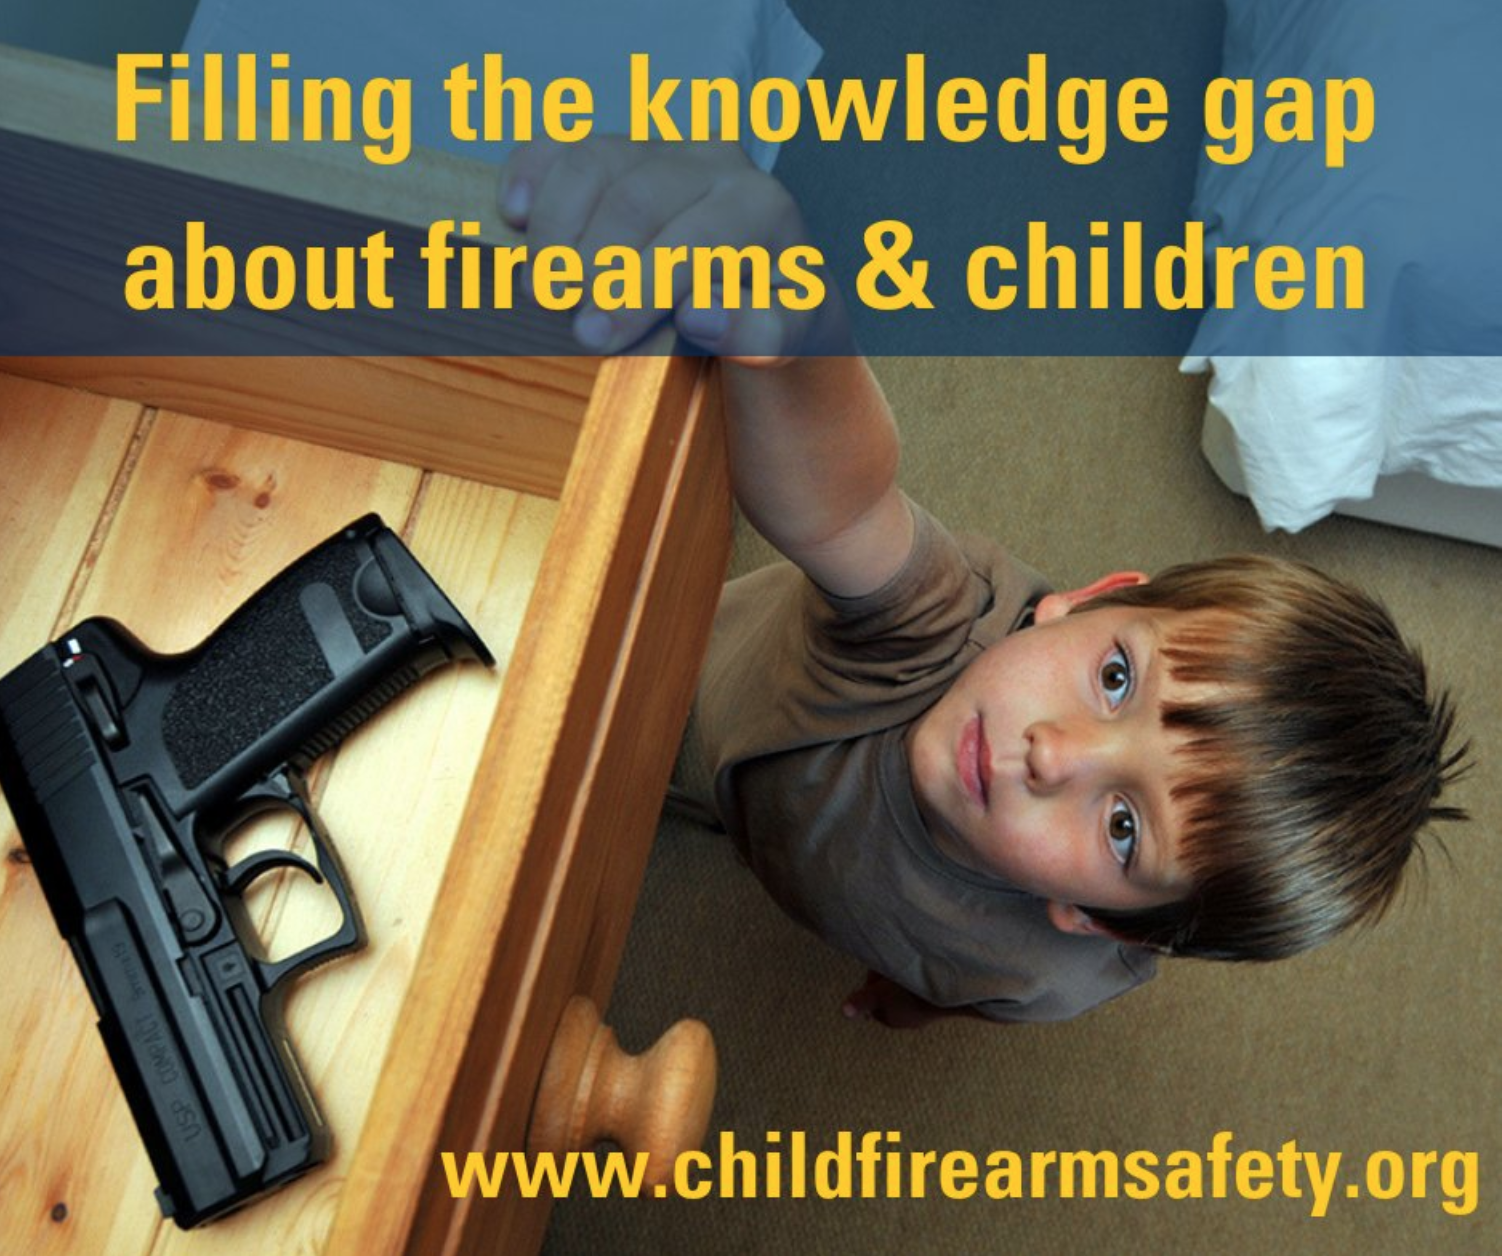 A child reaches up into a drawer containing a gun.